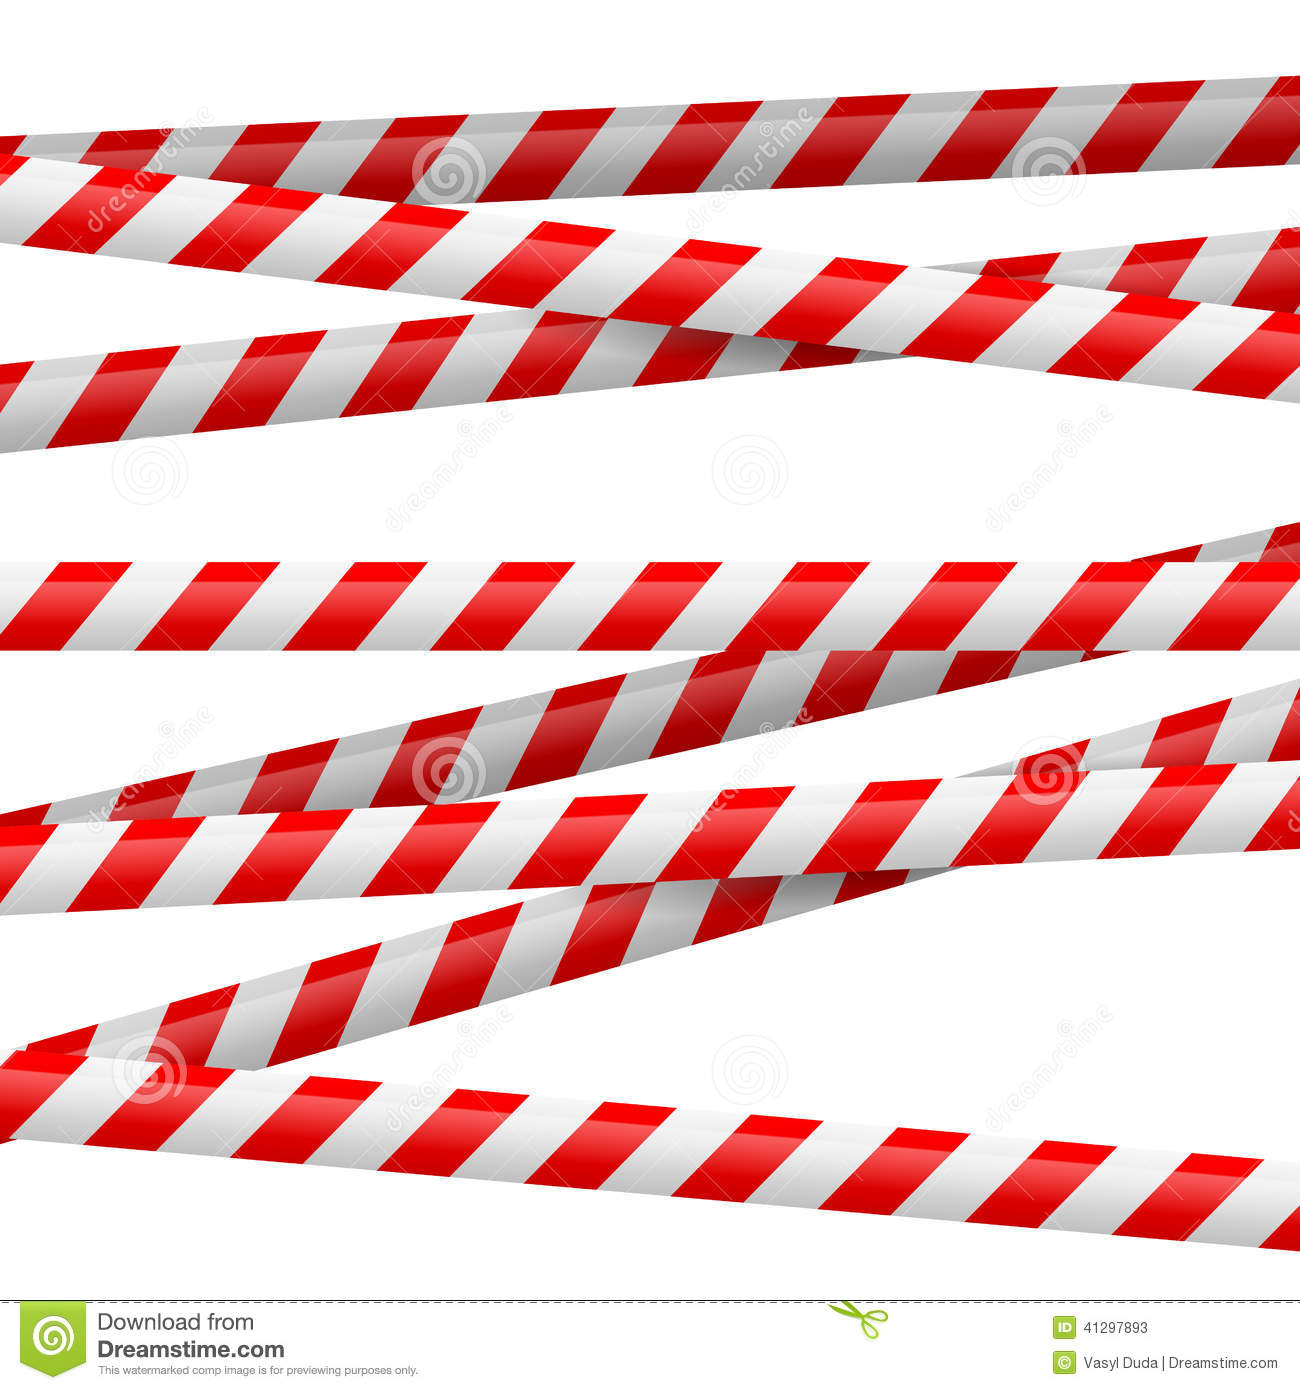 Red And White Danger Tape Stock Illustration - Image: 41297893 - photo#8